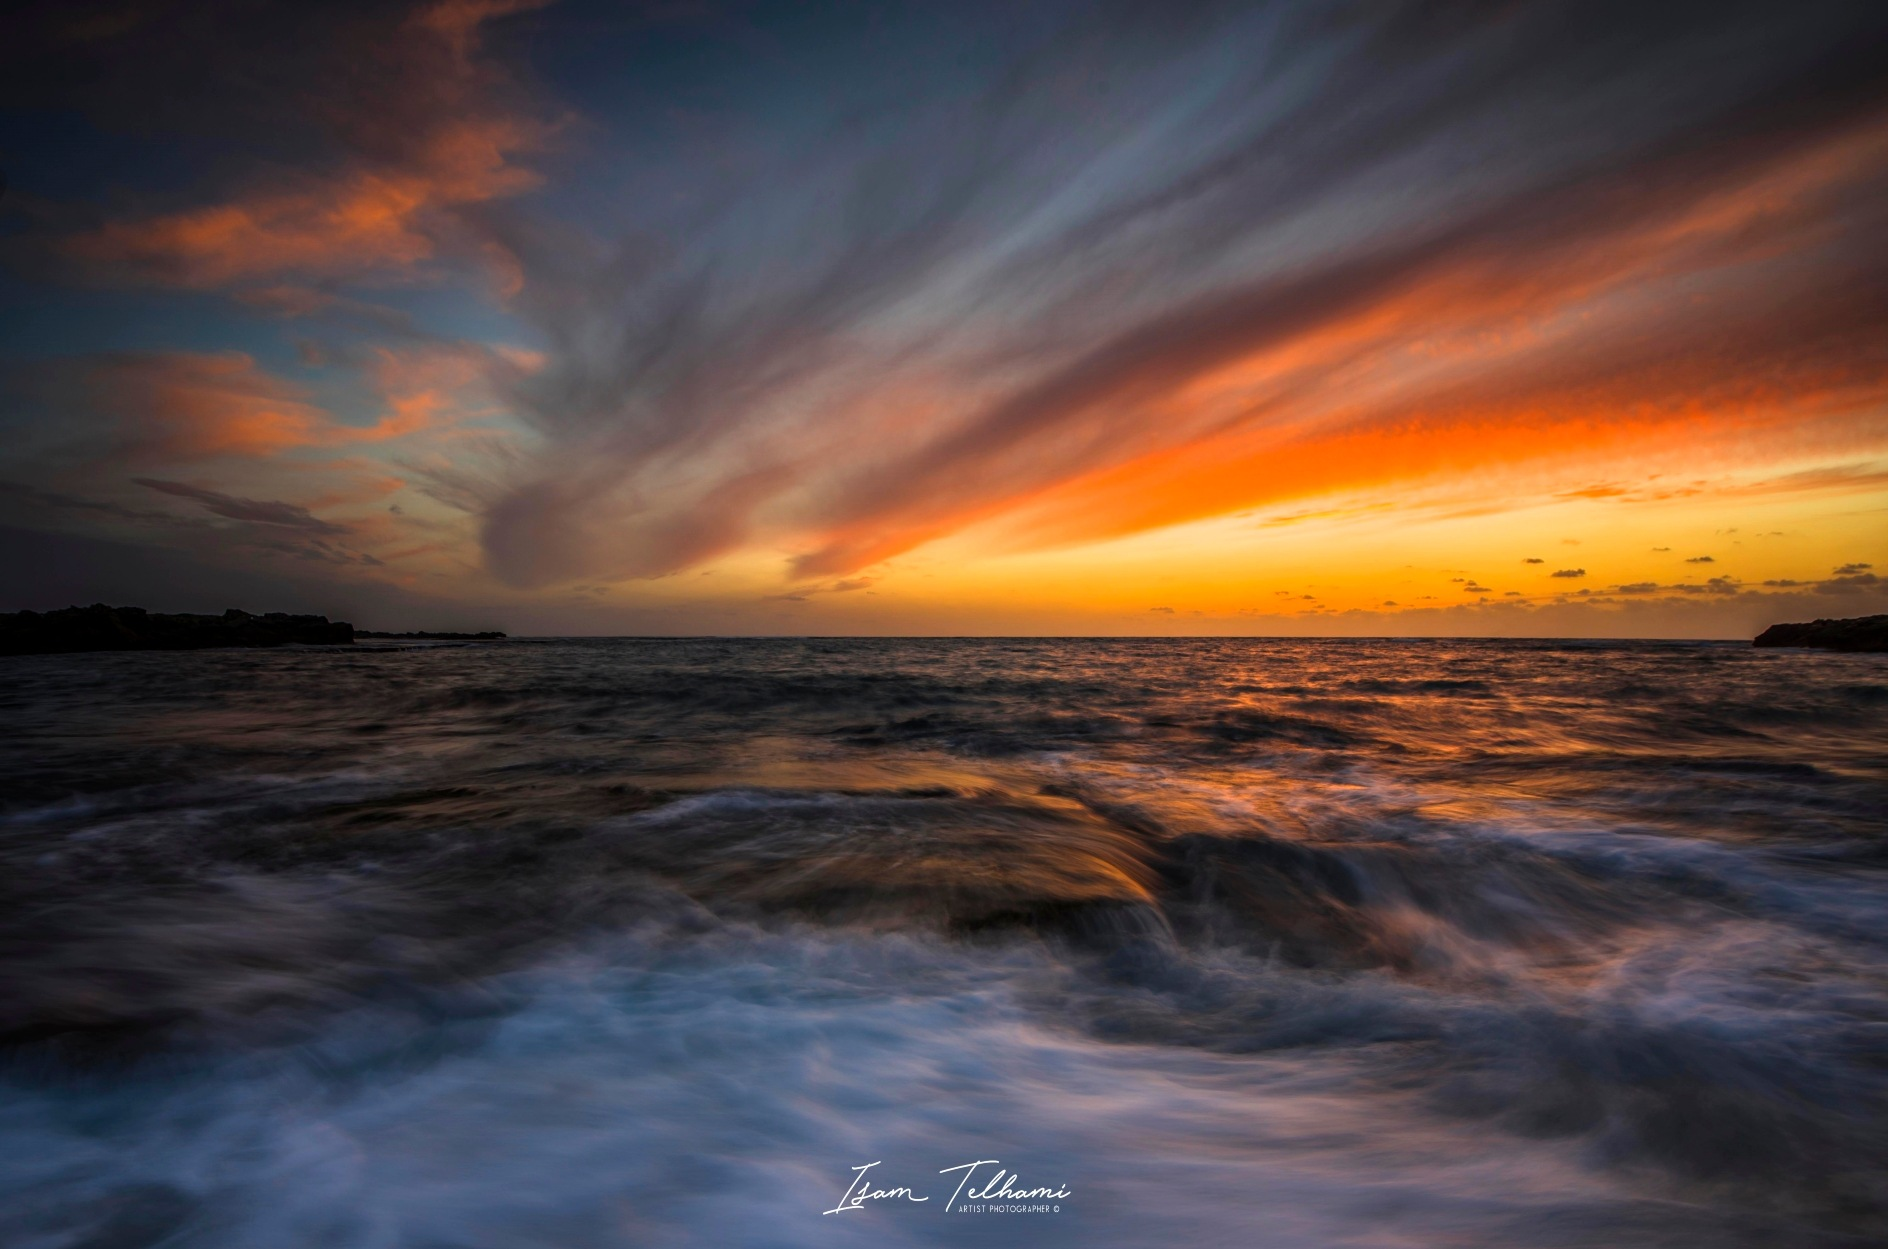 Paint with Clouds and Waves   by IsamTelhami